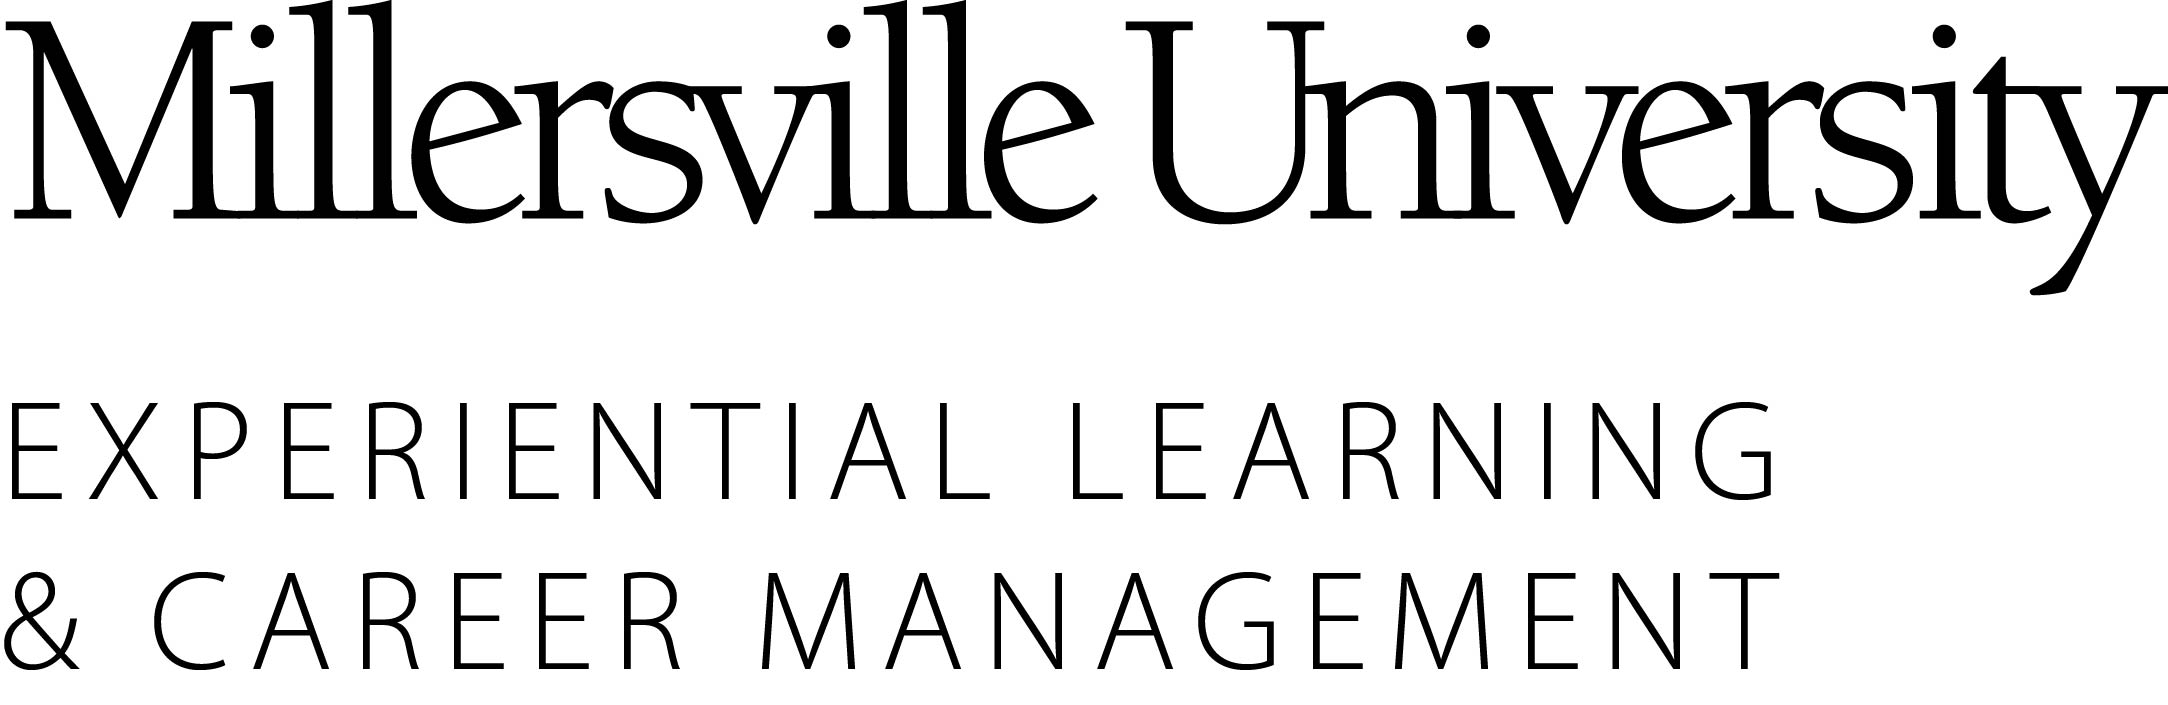 Image result for EXPERIENTIAL LEARNING AND CAREER MANAGEMENT mu logo